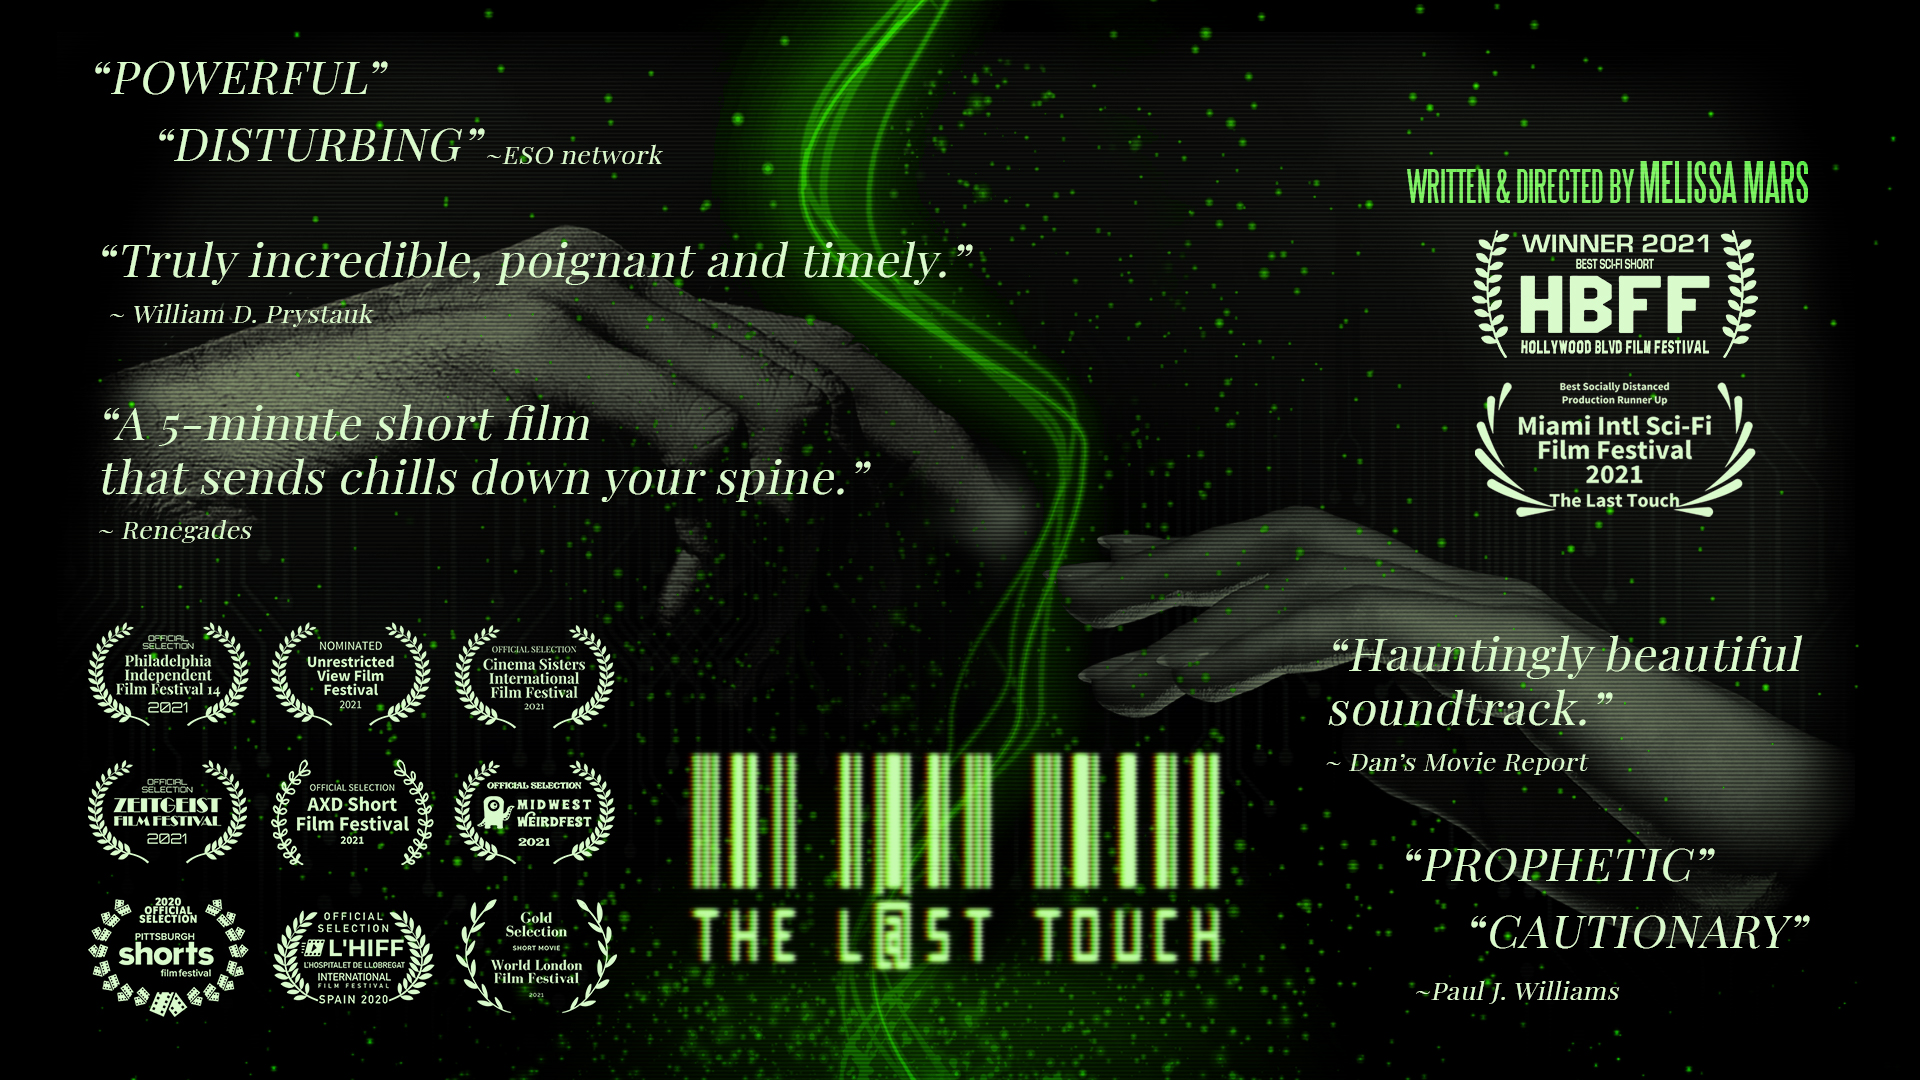 The Last Touch Trailer has arrived!